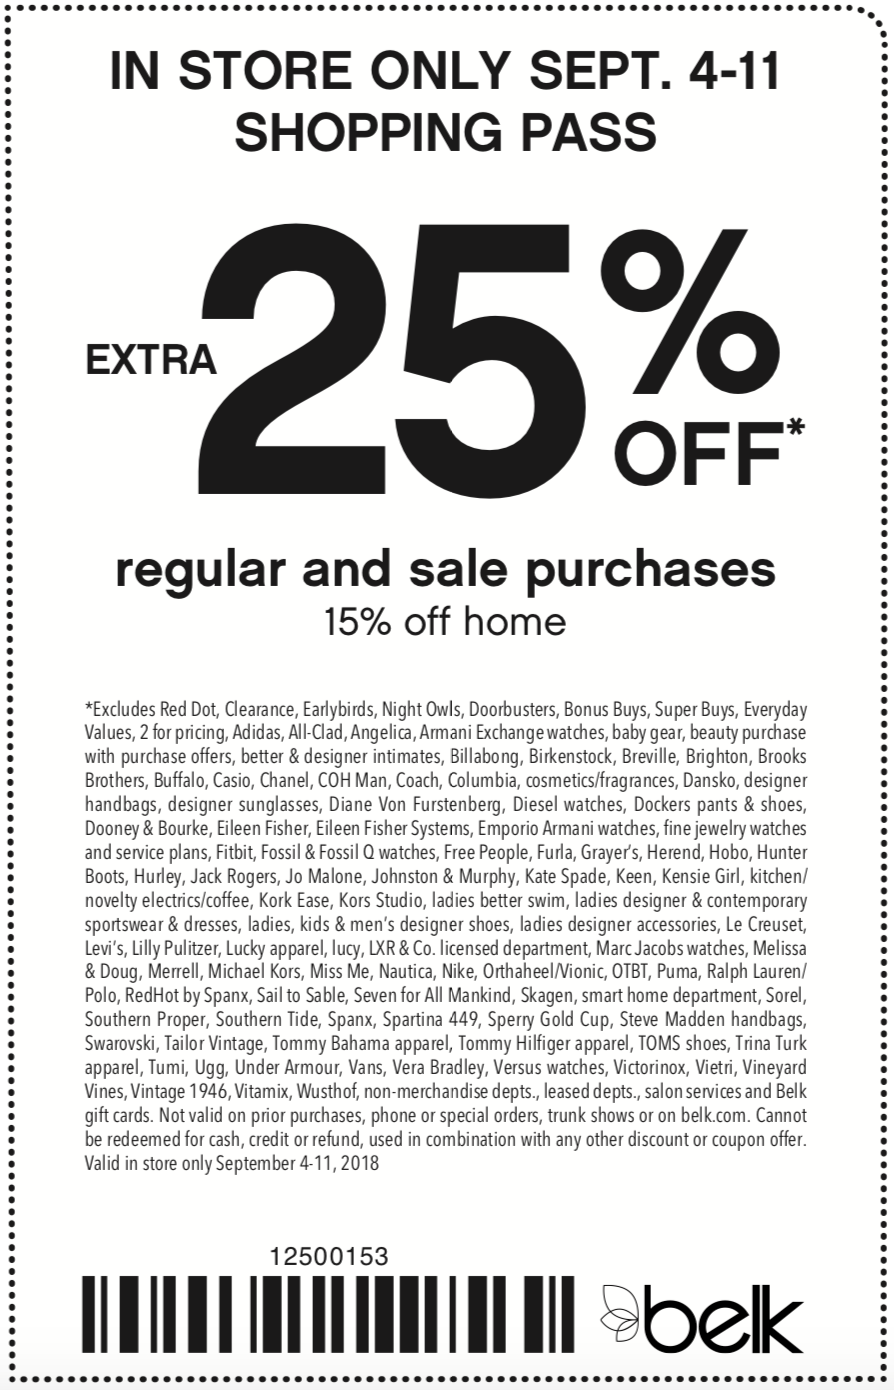 Belk Coupon July 2019 Extra 25% off at Belk